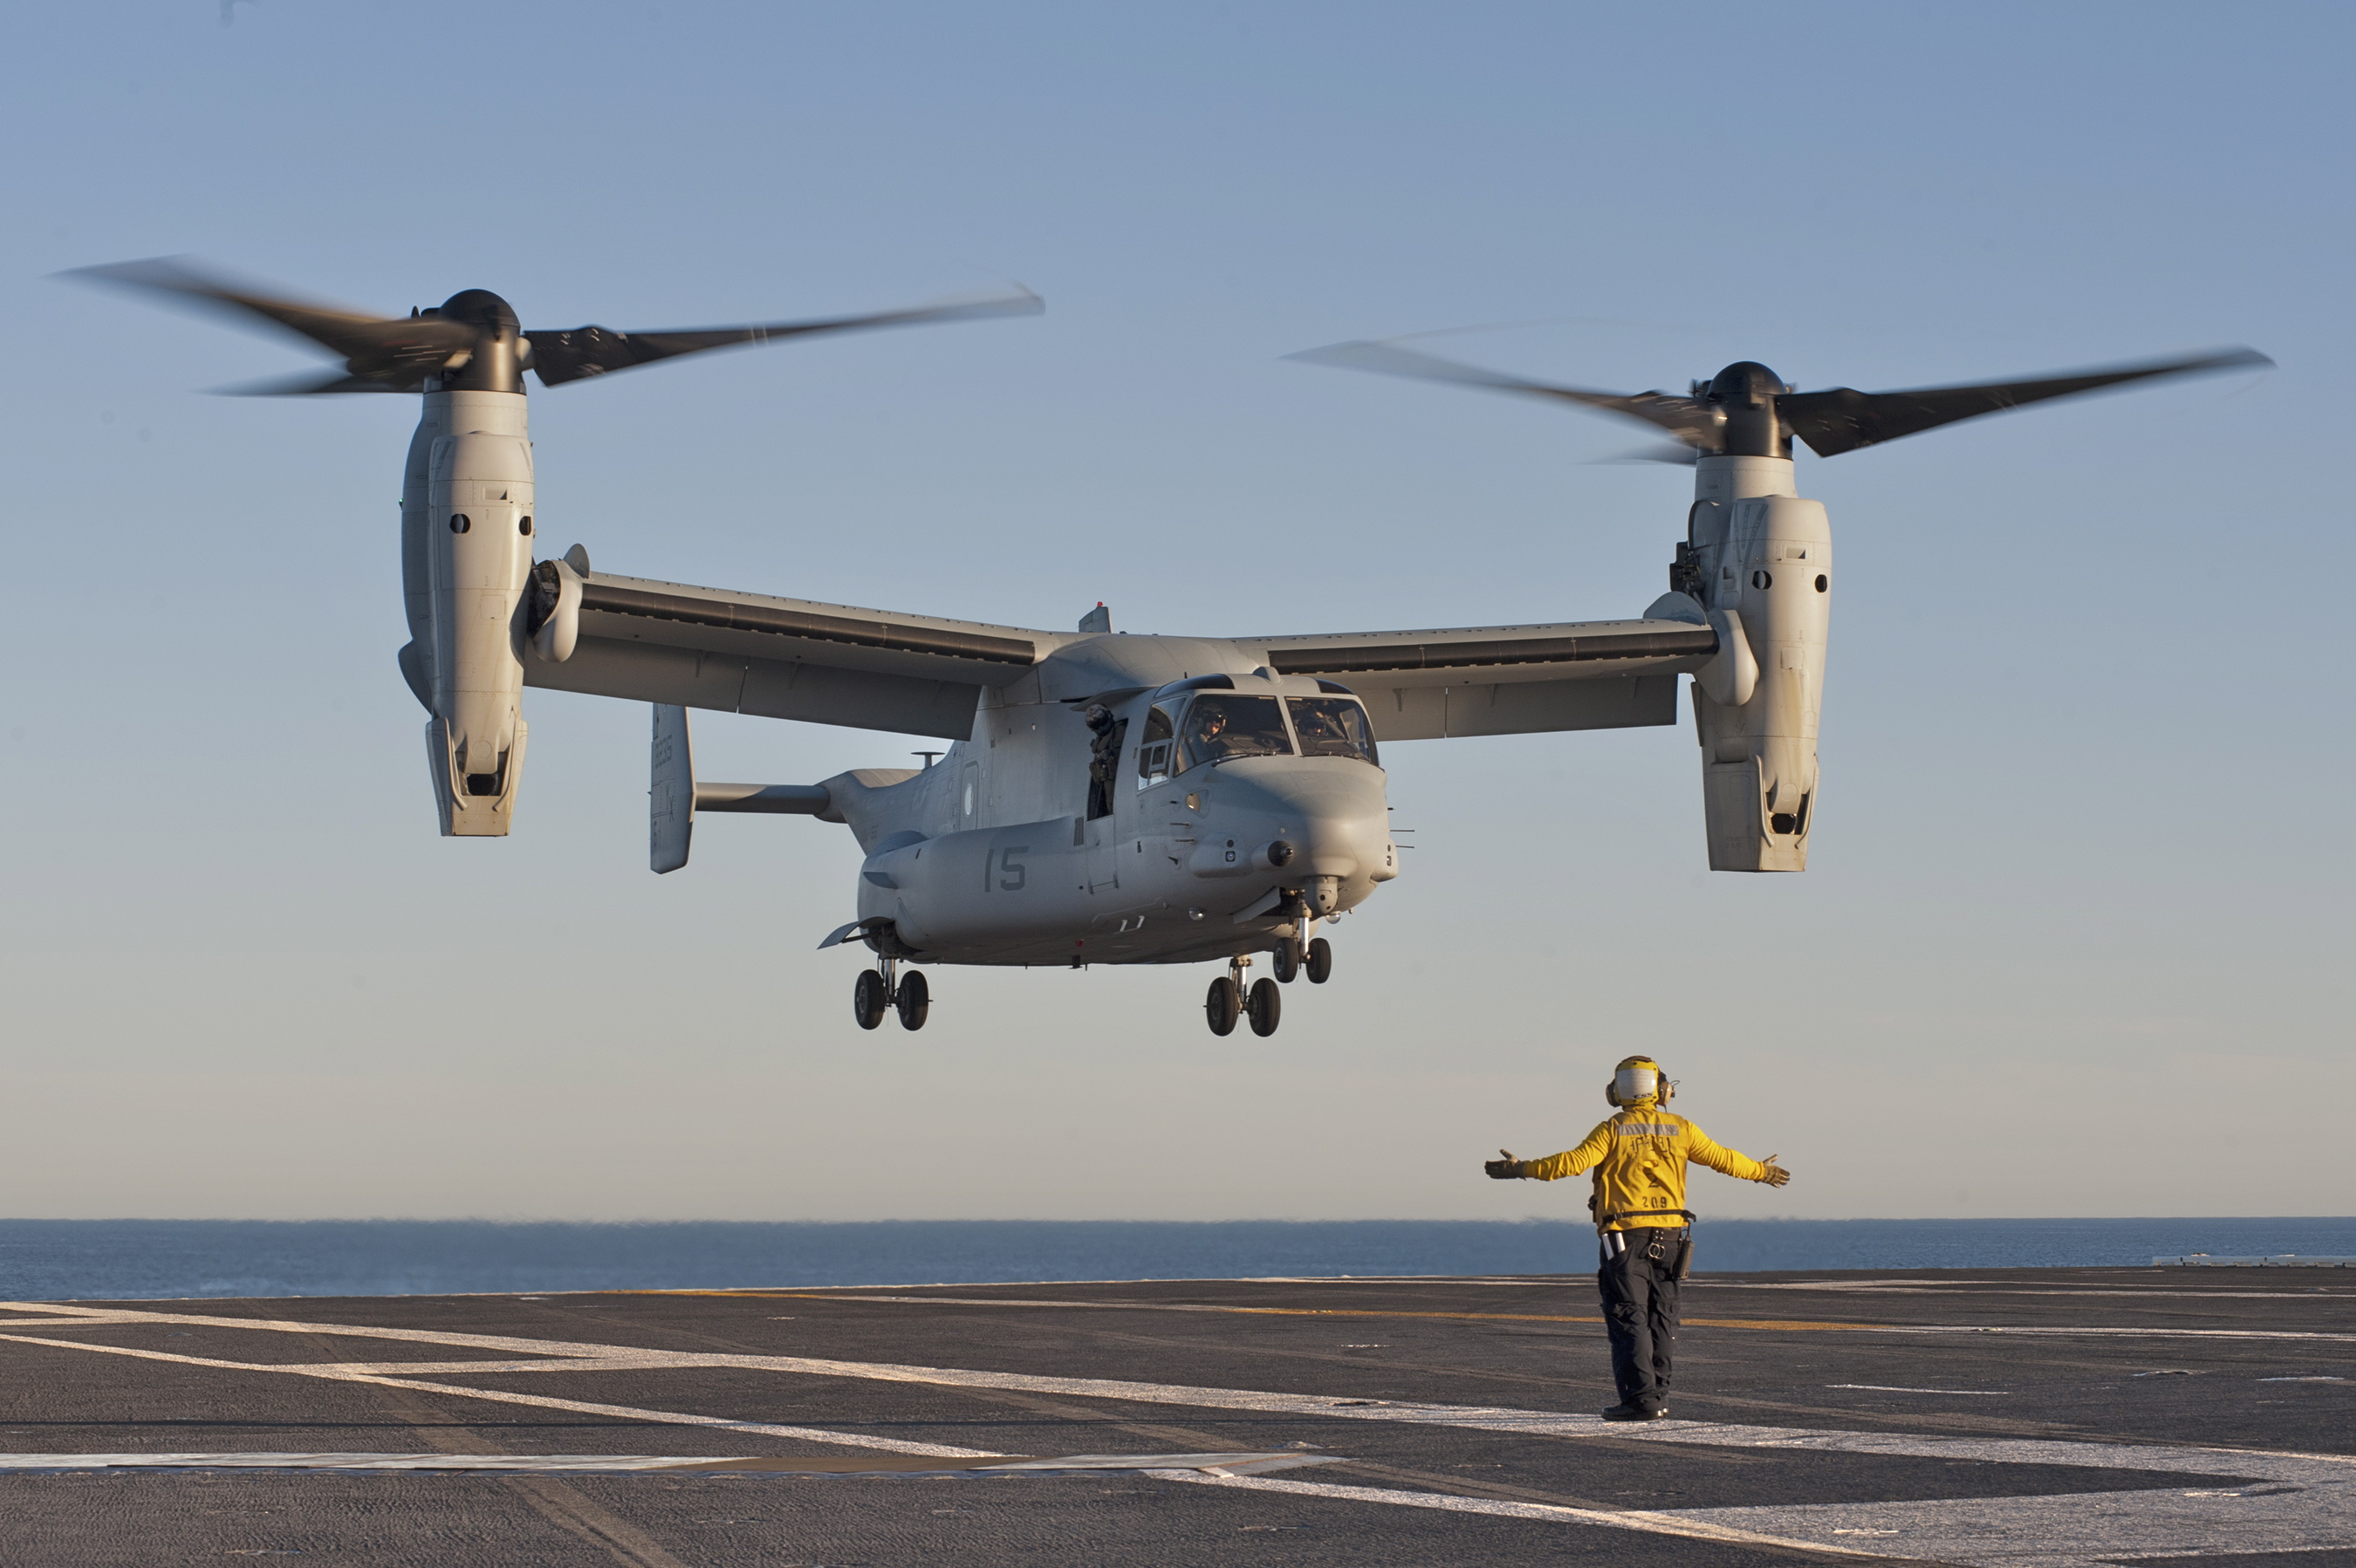 An MV-22 Osprey approaches for a touch-and-go landing on the flight deck of the aircraft carrier USS Carl Vinson in this photo, dated Feb. 16, 2013.  (U.S. Navy photo by Mass Communication Specialist 3rd George M. Bell)